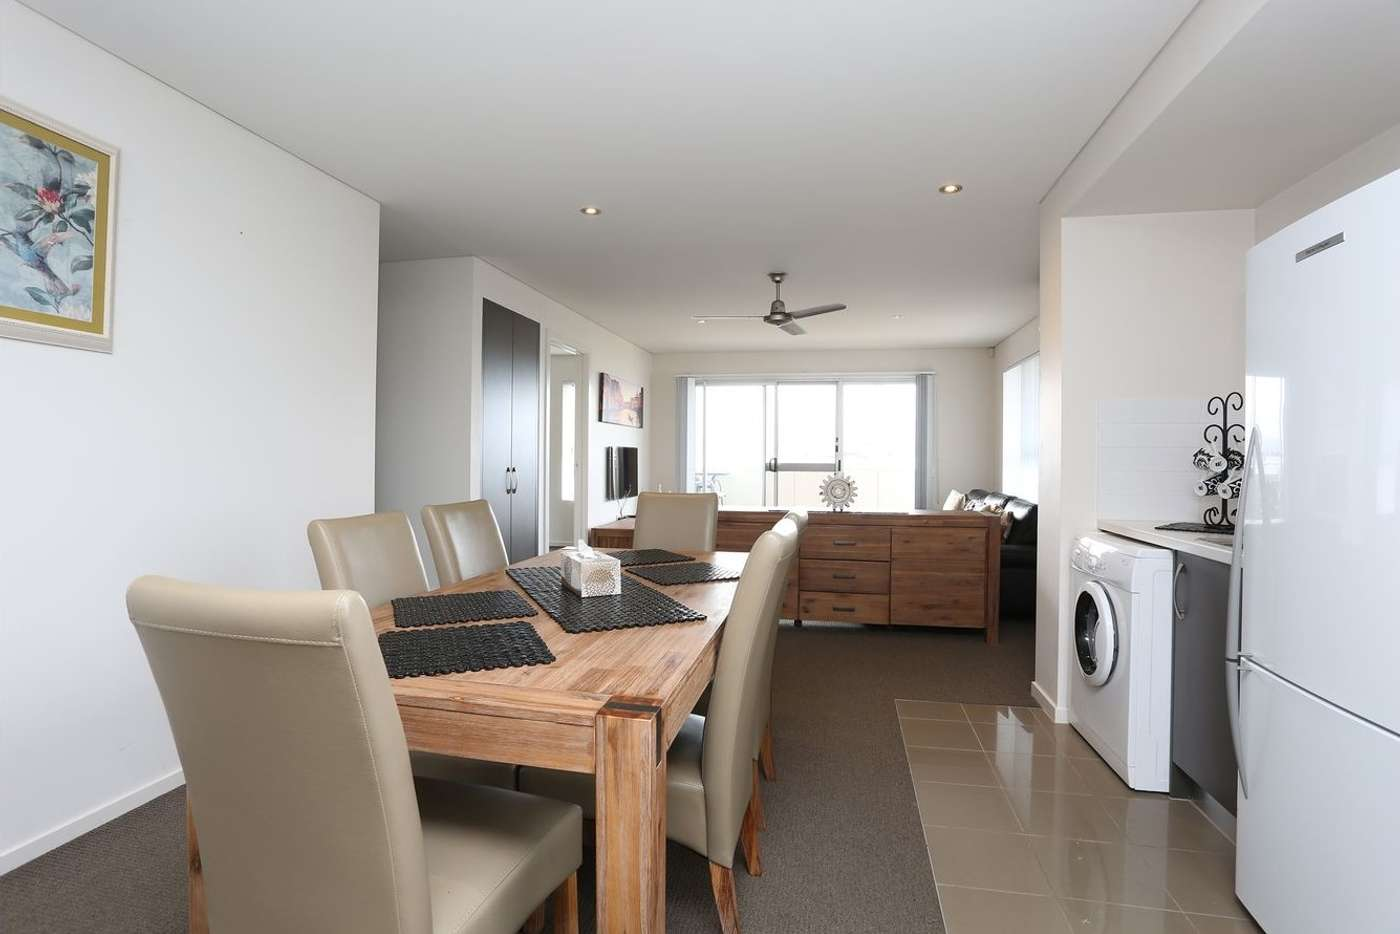 Fifth view of Homely apartment listing, 13/32-36 RIVERSIDE STREET, Mawson Lakes SA 5095